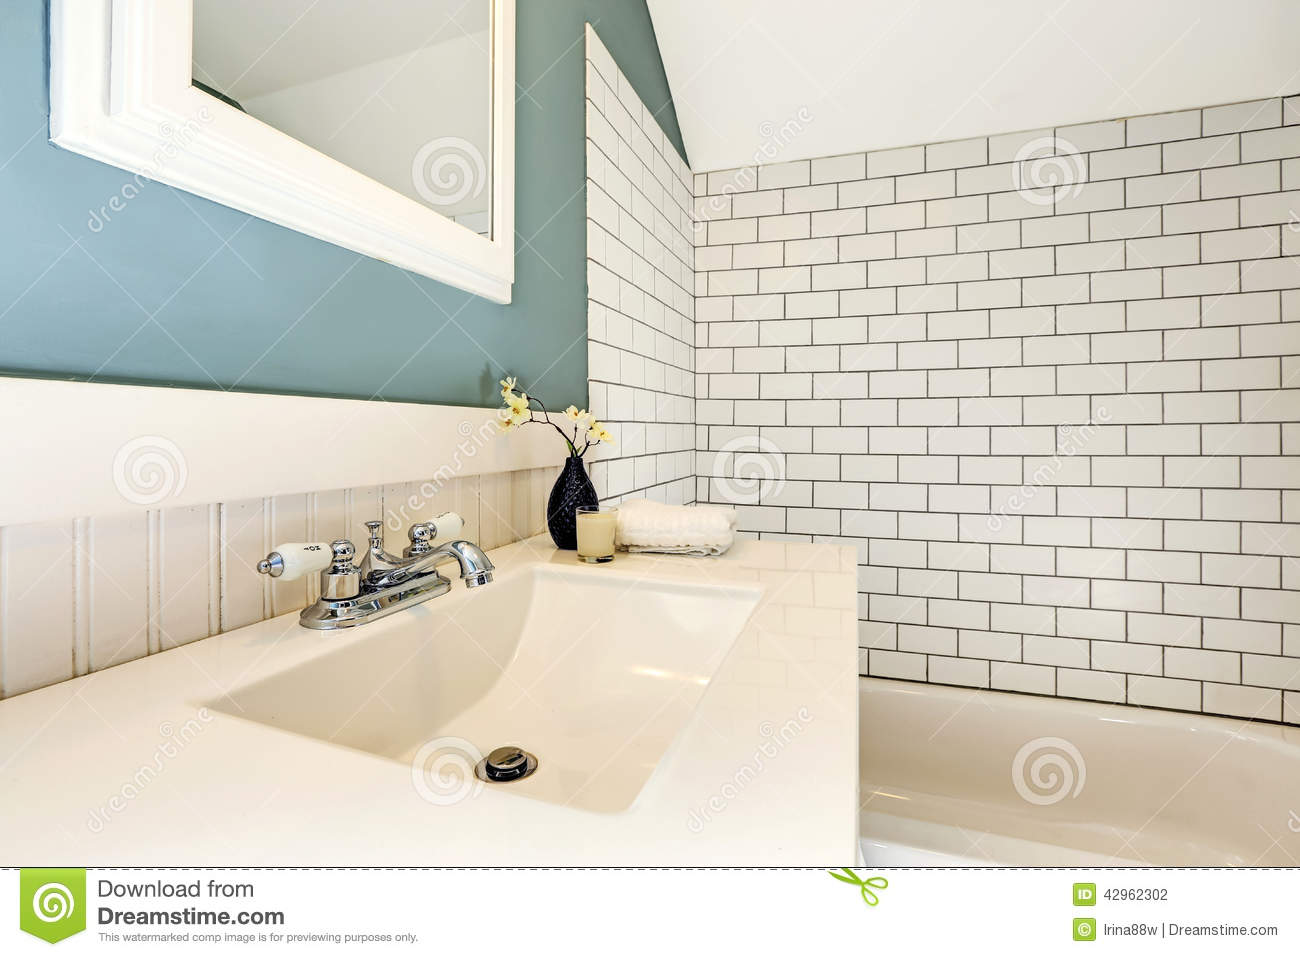 Aqua Bathroom With White Tile Wall Trim Stock Photo